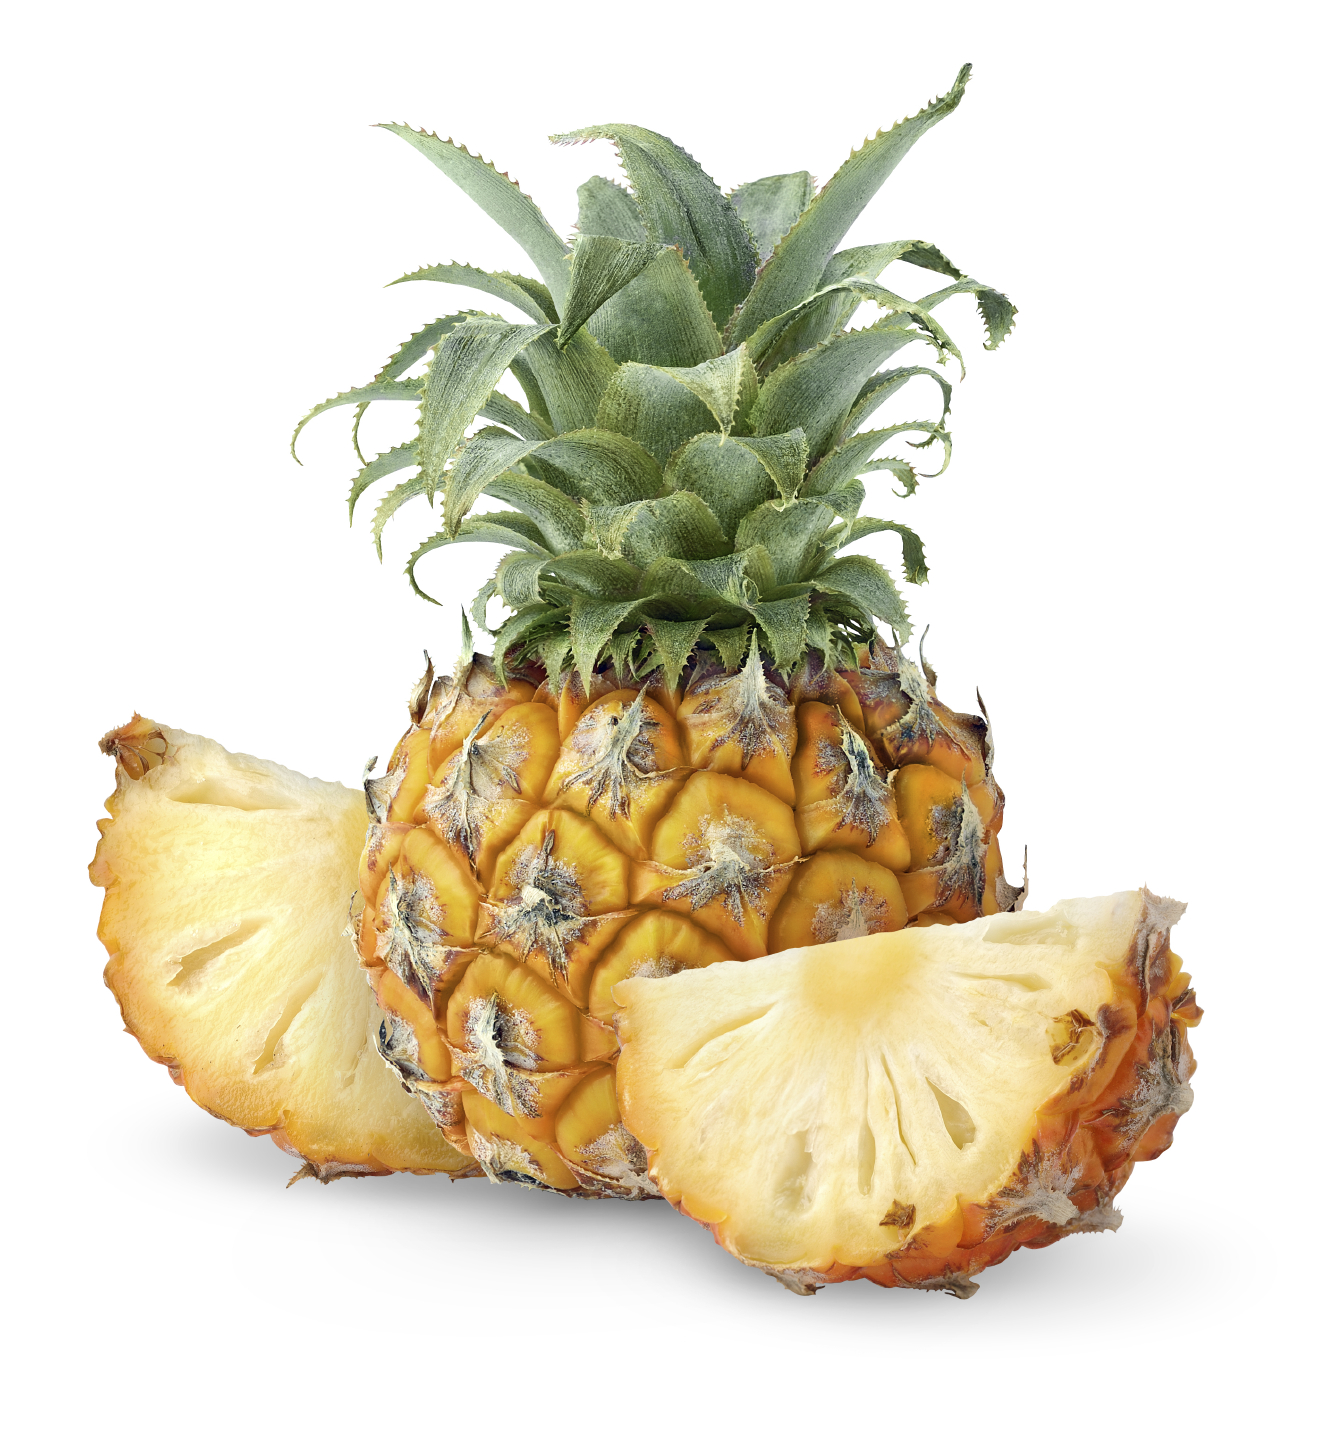 Frieda's Specialty Produce - Zululand Queen Baby Pineapple